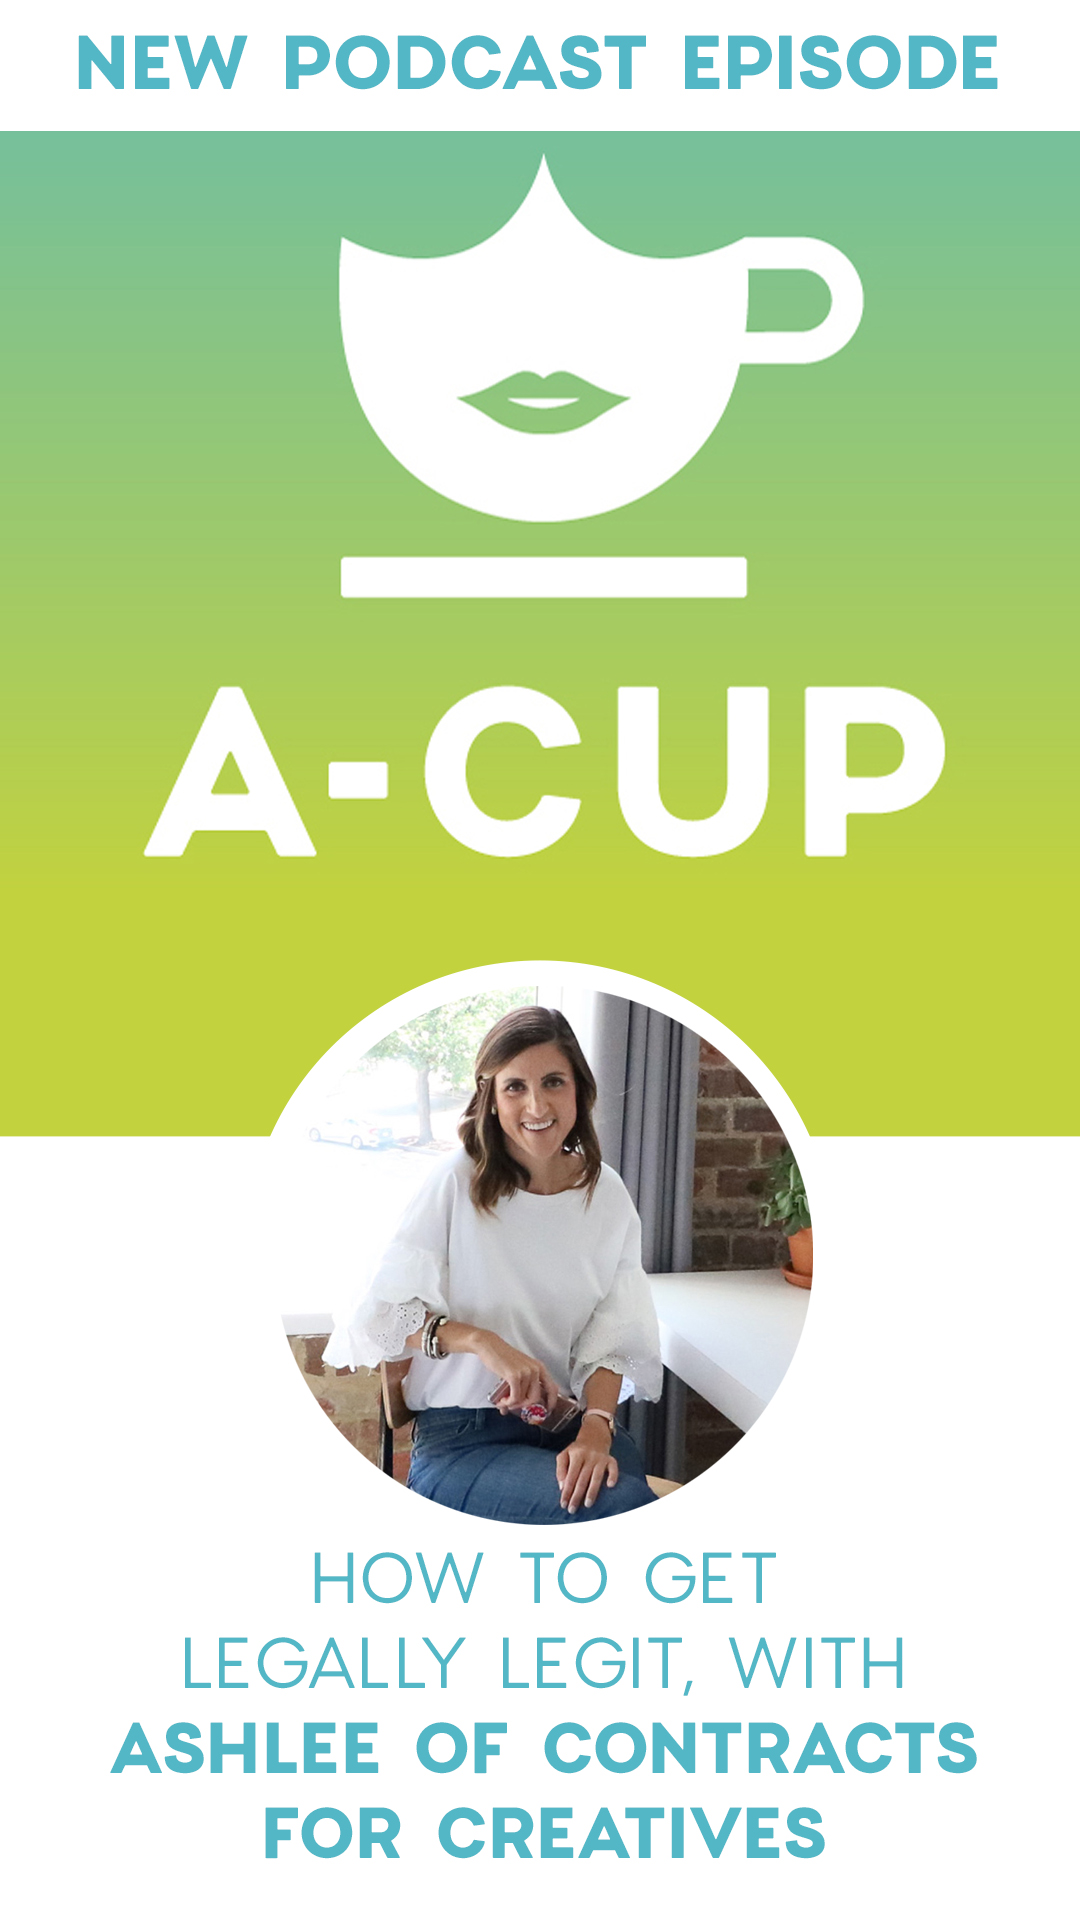 A-Cup Podcast Episode: How to Get Legally Legit - ashlee